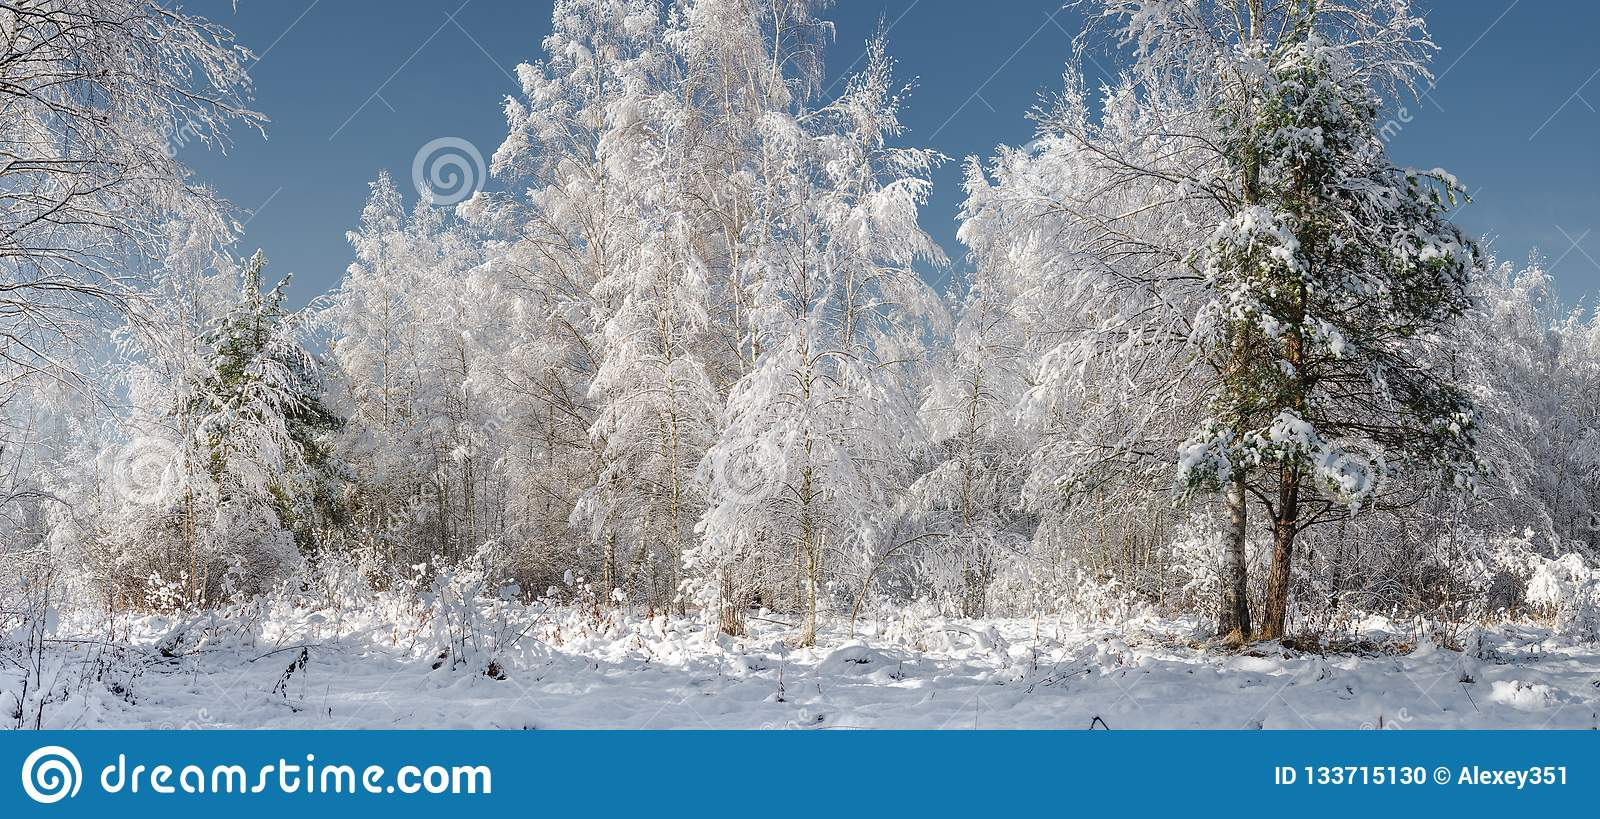 Snowy fir trees in winter forest at snowfall/the snow wood in sunny day